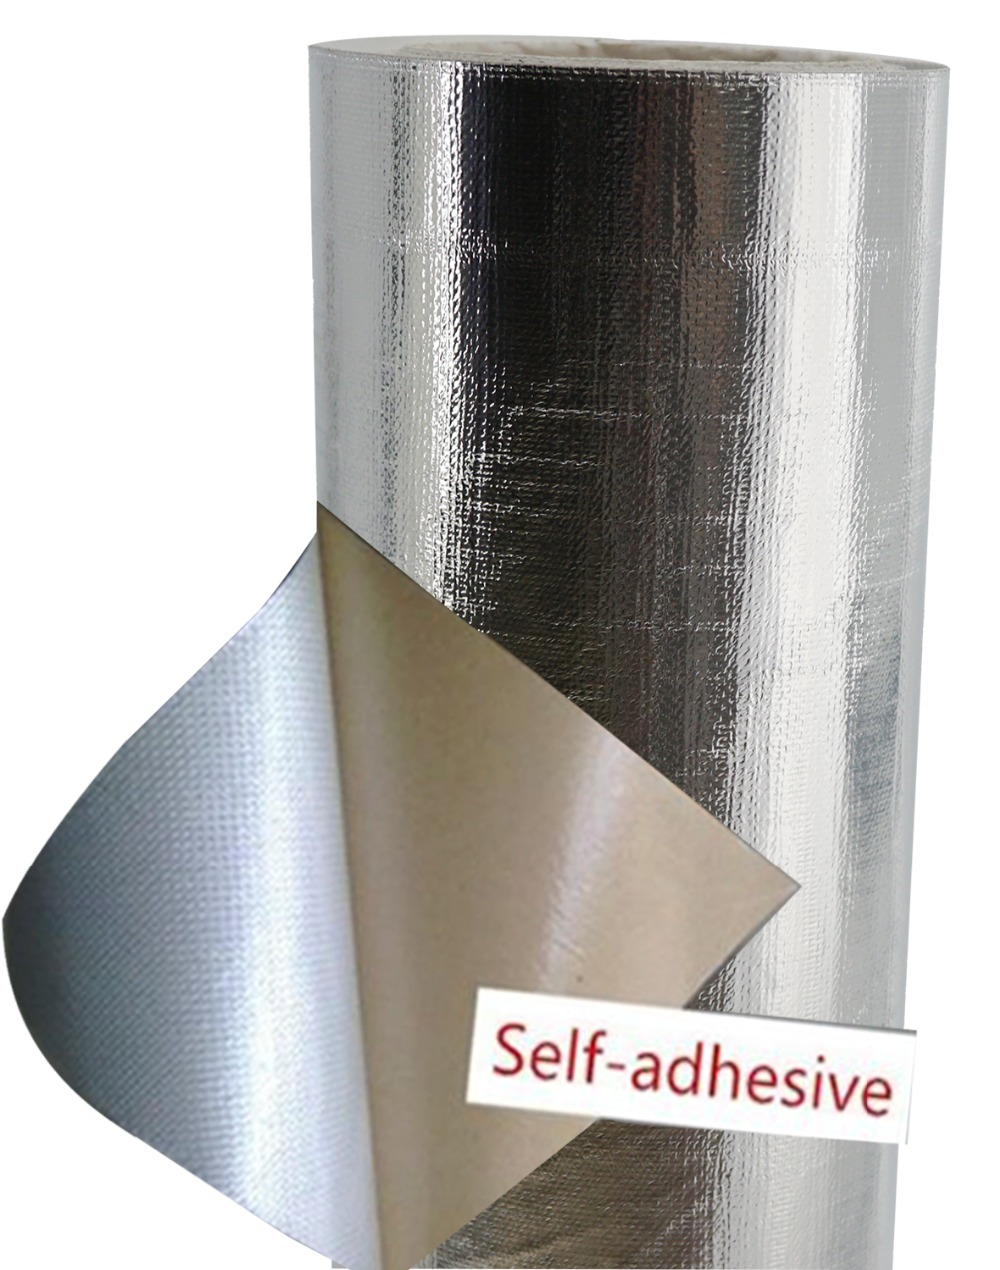 Fiberglass cloth insulation self adhesive aluminum for Fiberglass thermal insulation